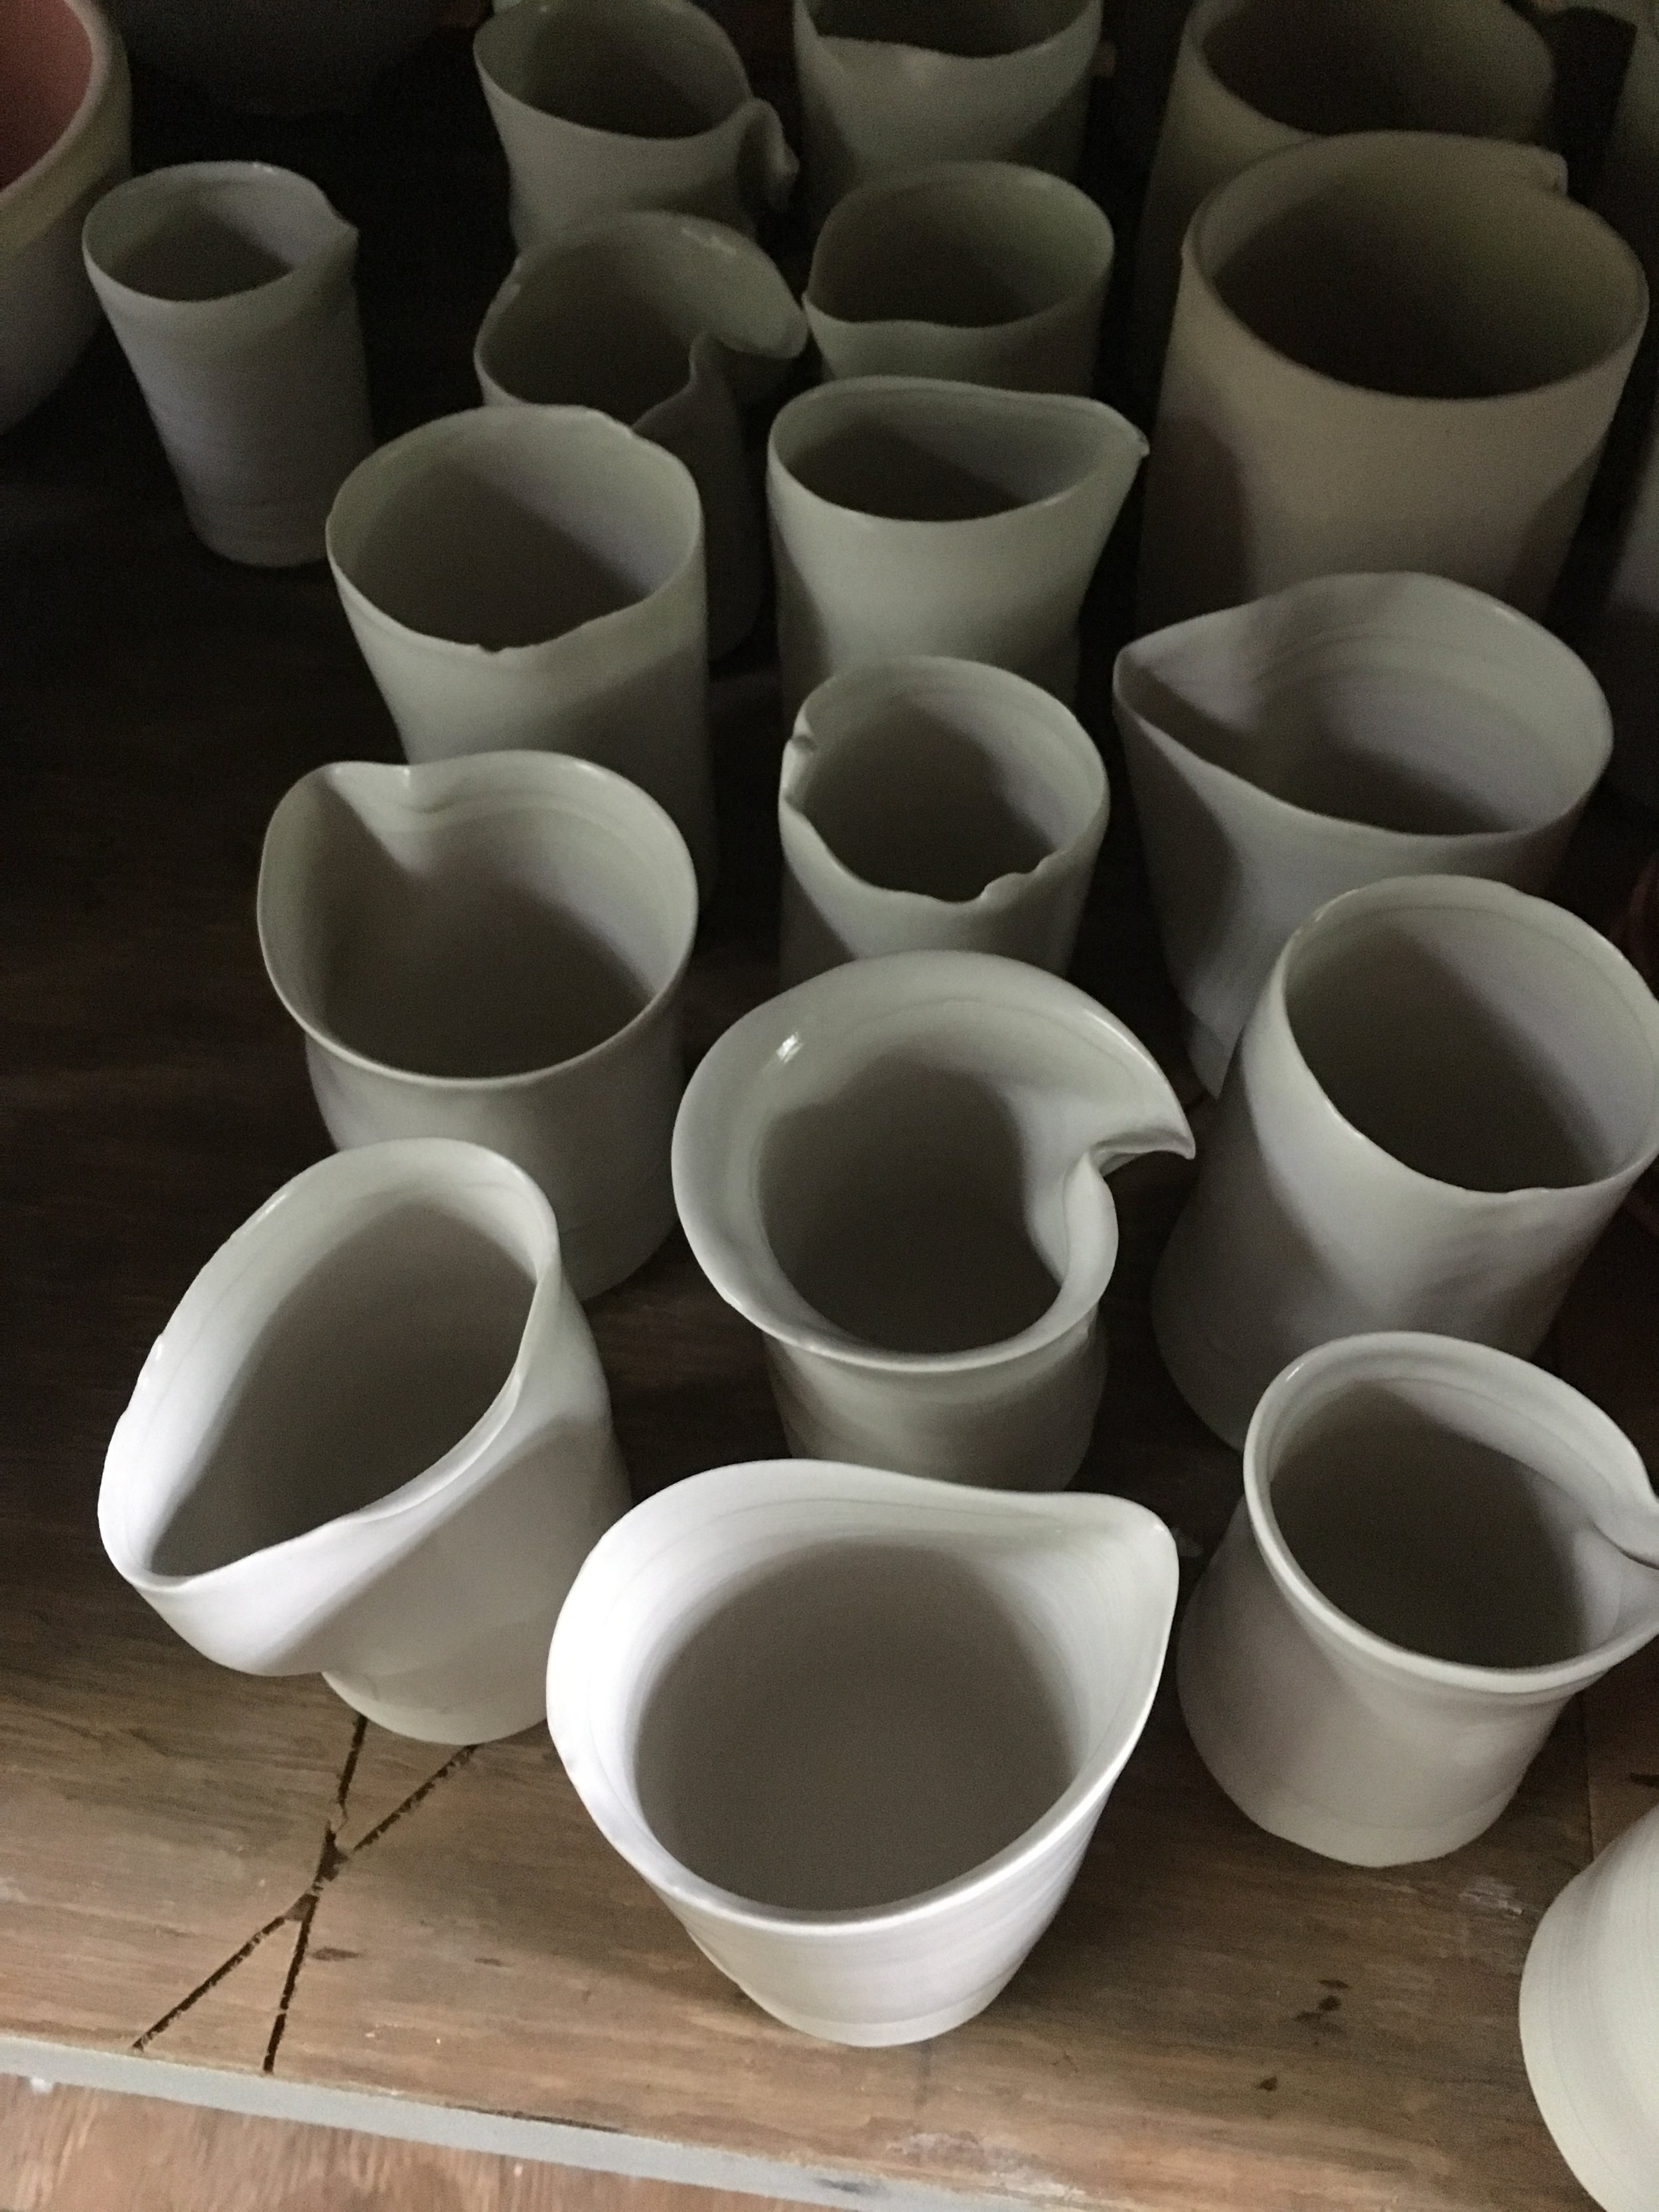 - This week I'm wood-firing 43 vessels for Plainsong Kico. They are glazed with Snow Cap Shino that fires as a mix of gray (in reduction) and white (in oxidation). Here are some of them lined up on the shelf in the kiln shed before the load-in.I'll post more pictures when I have my stoking shift on Thursday... And then pictures of the results at the July 1st kiln unloading!The firing lasts for three days, followed by a week-long long cool-down.May fire god Agni be kind to us.UPDATE: I got less ash and carbon trapping/ graying of the Shino than I hoped for, so the vessels are very subtle/ less tortured than last time. Also, everything that I fired as bisqueware shattered. The pieces that had already been fired to ^10, unglazed in the electric kiln, were fine.Images (left to right): my stoking shift - the first